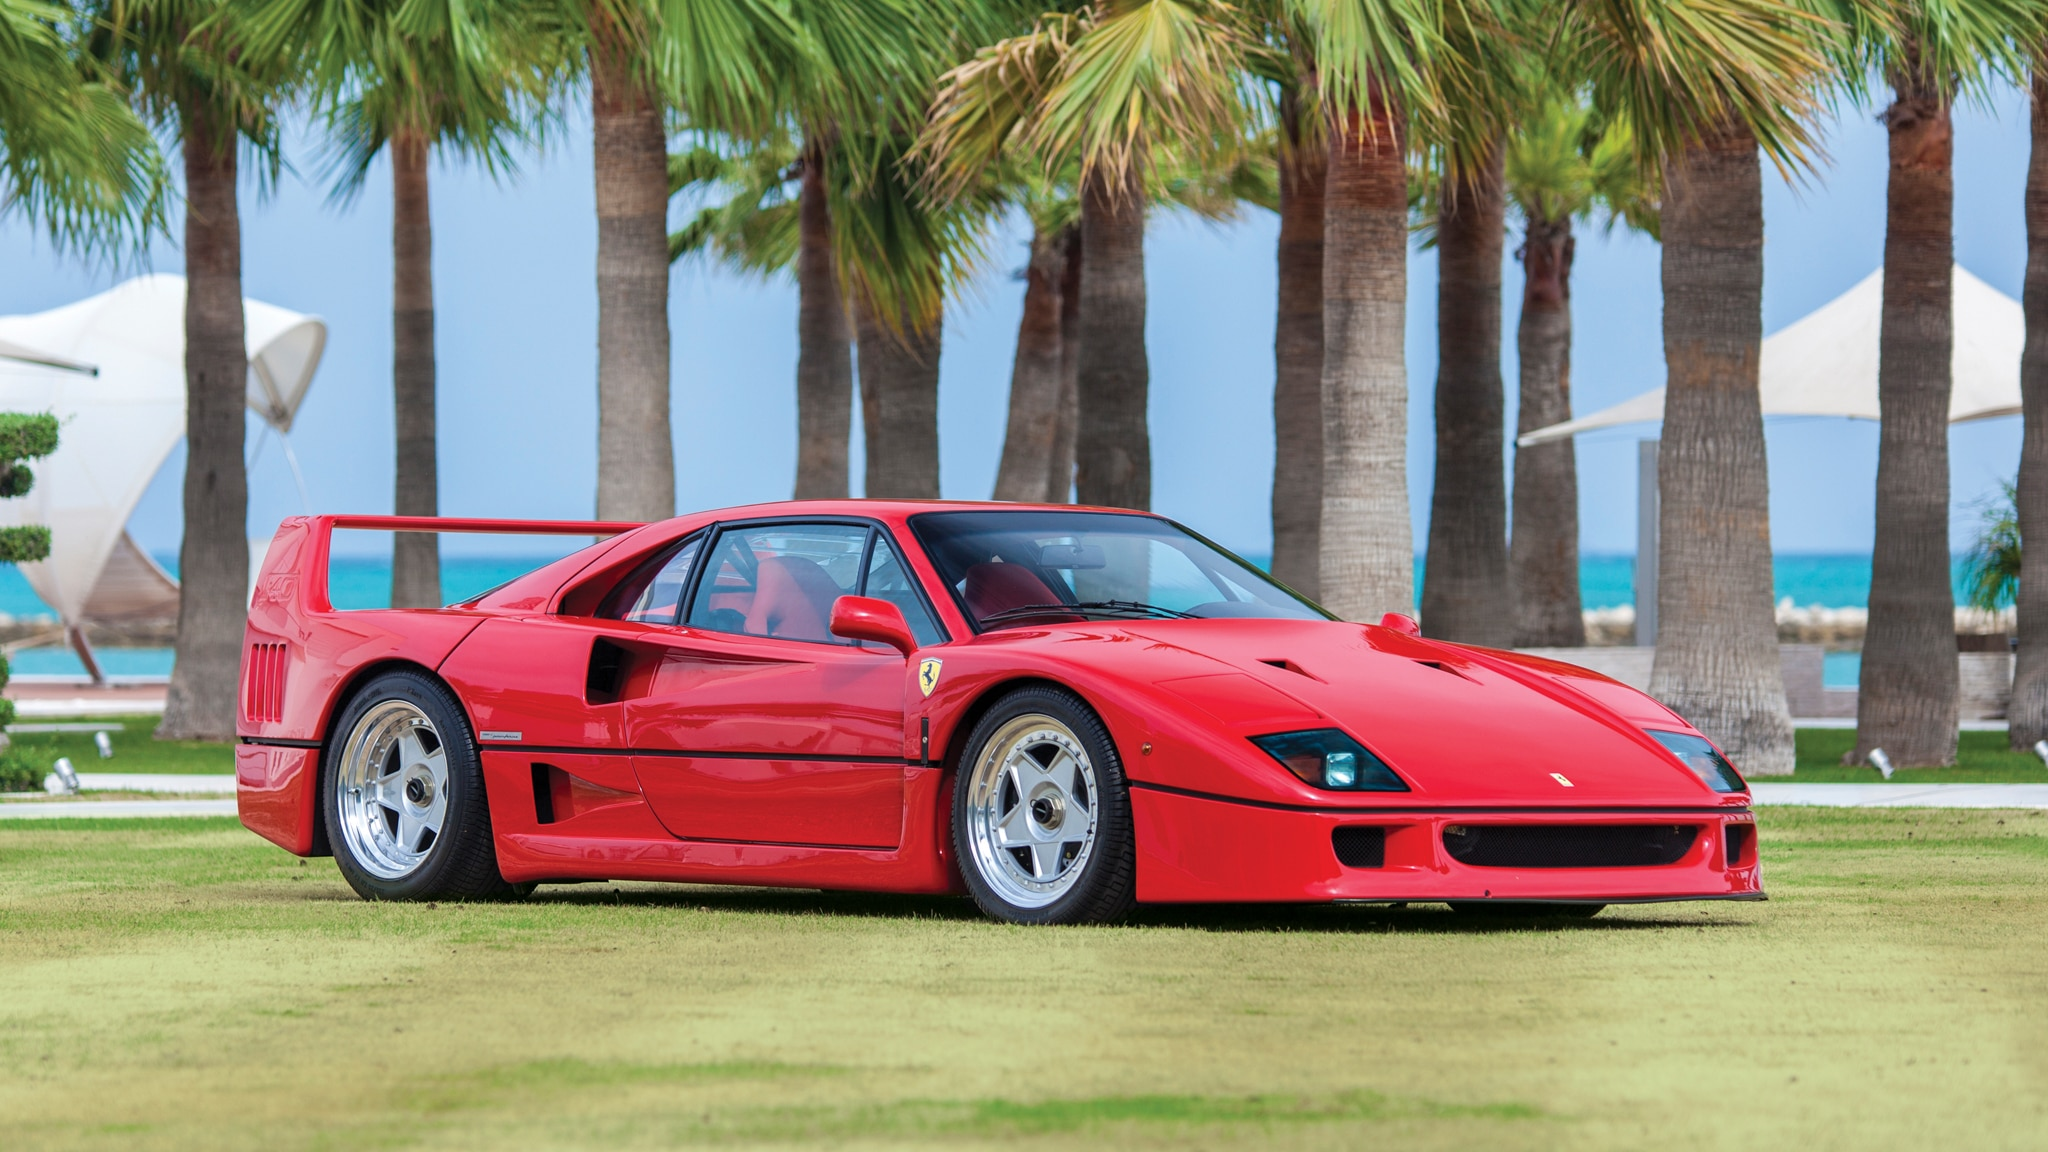 Ferrari F40 History And Specifications Of The Legendary Supercar Automotive Magazine Technology Shout